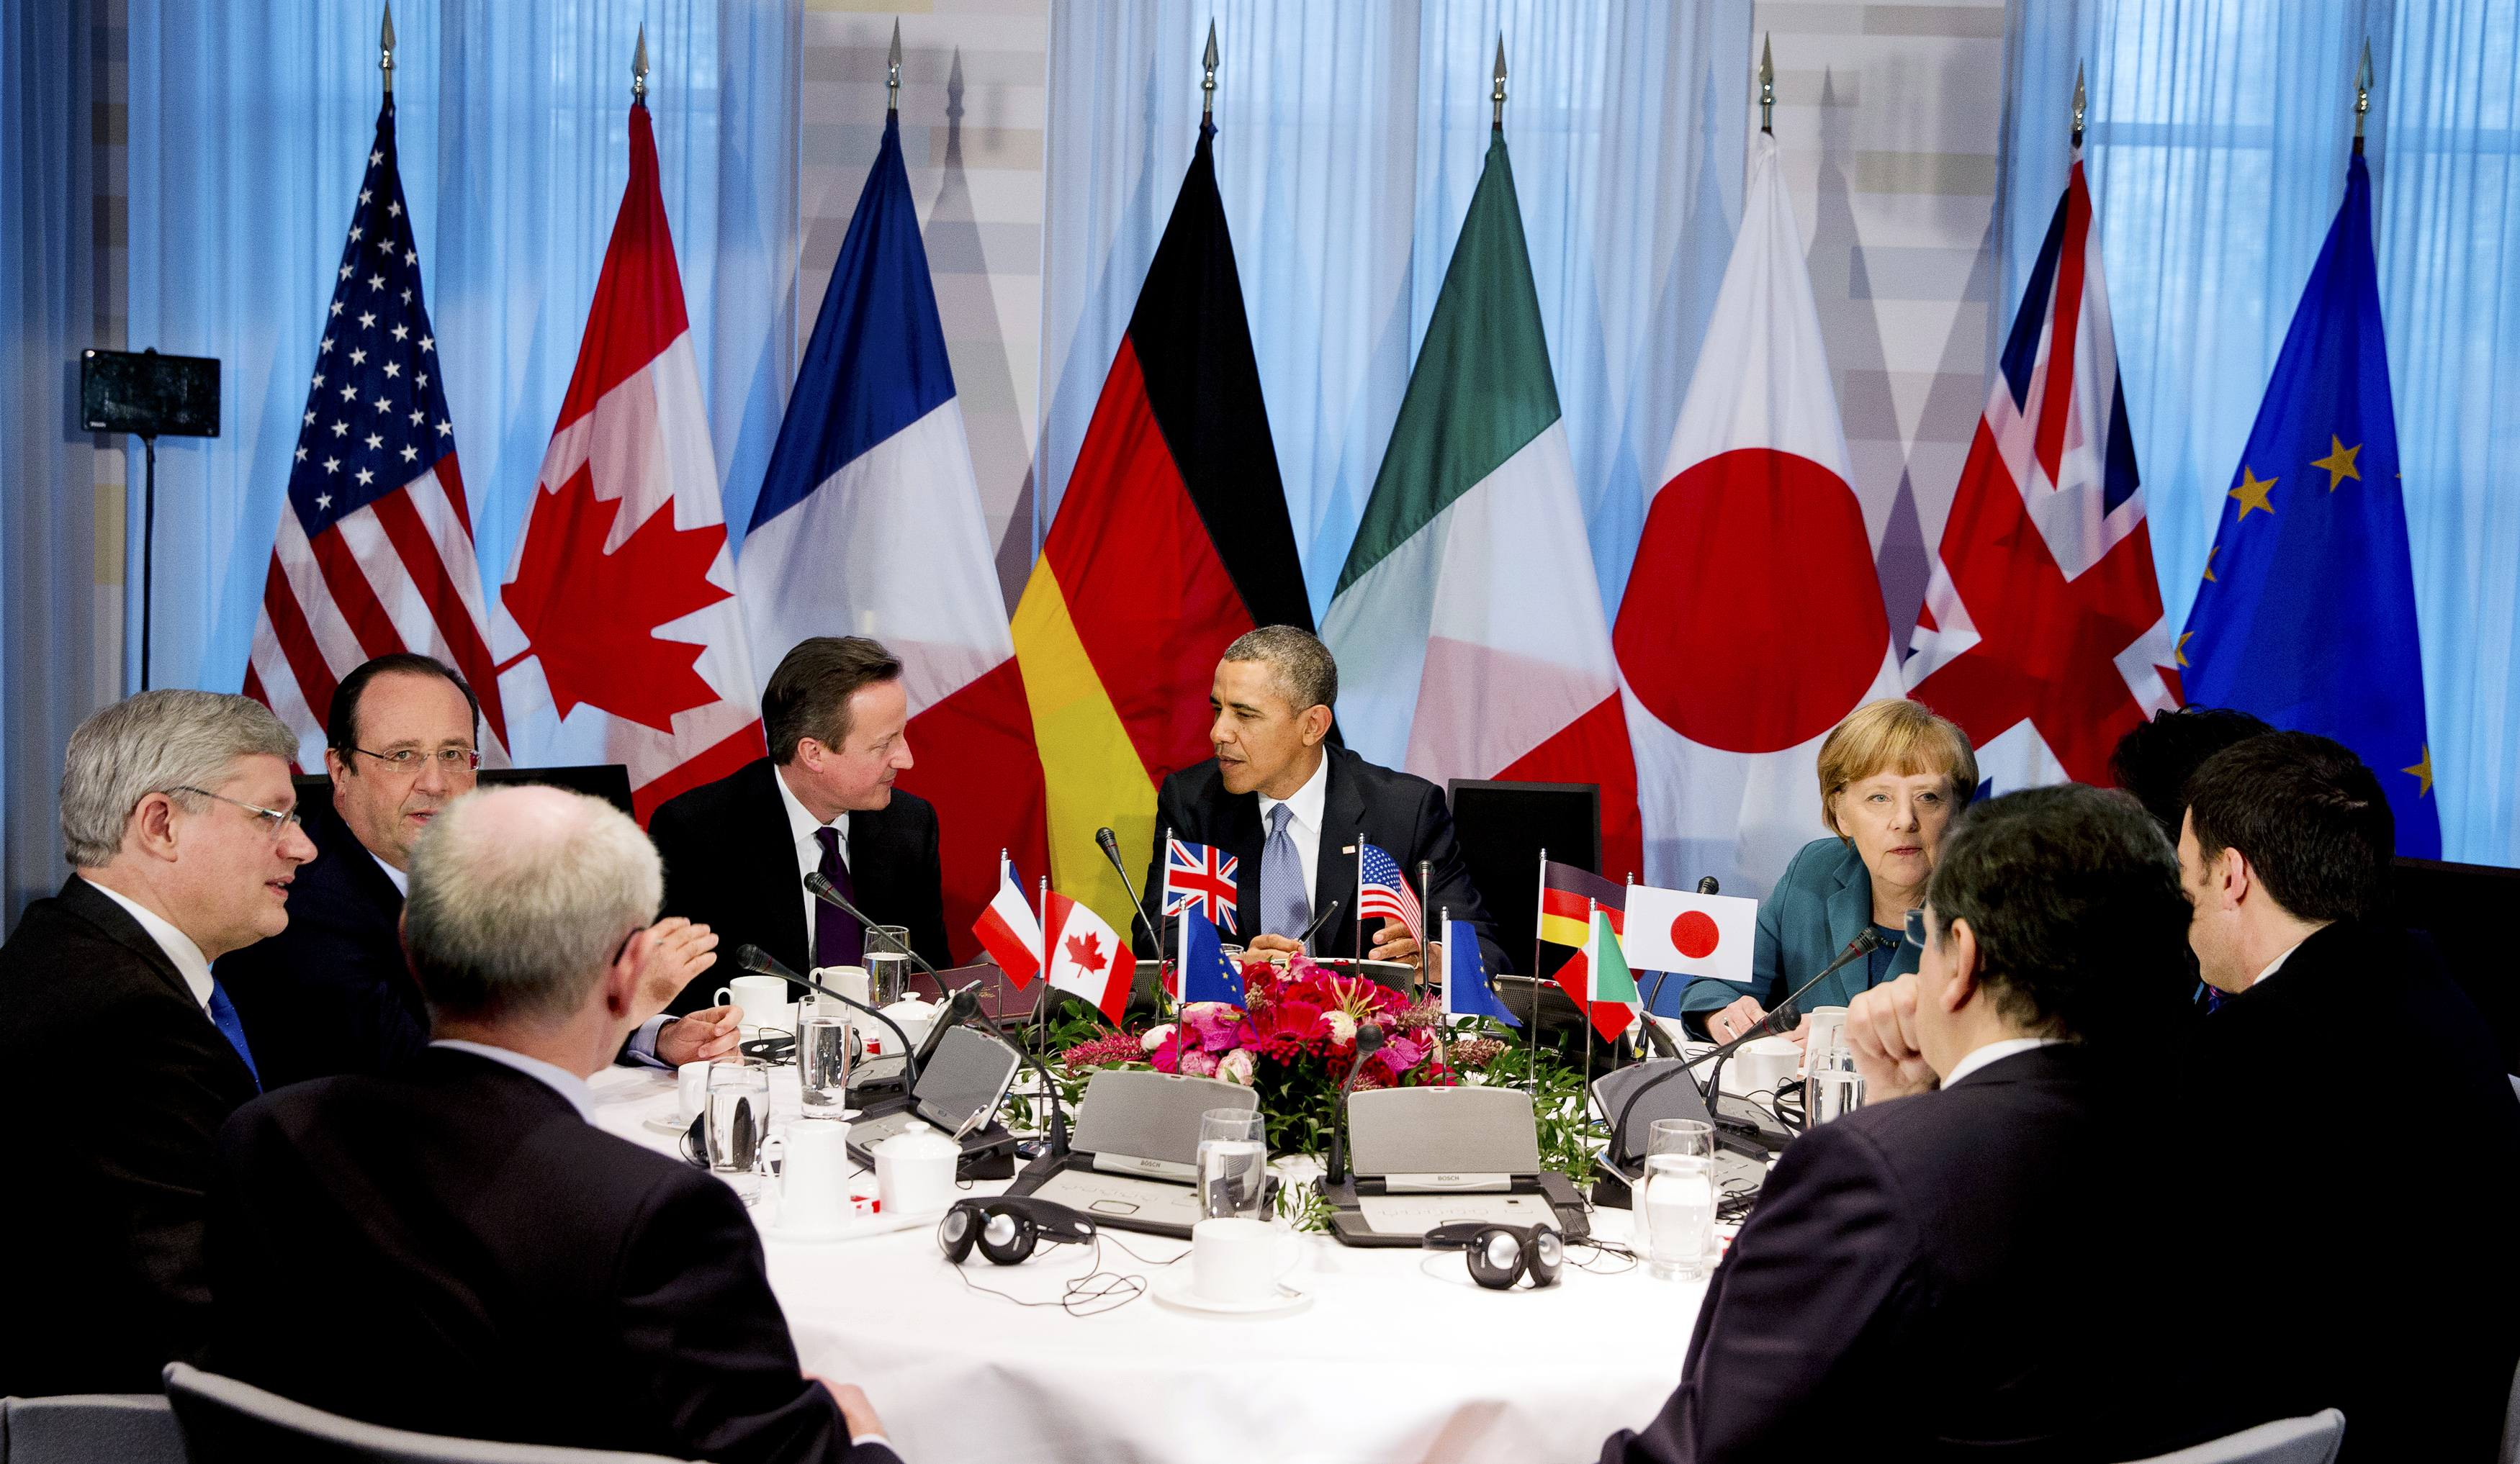 G7 leaders: statement on Ukraine